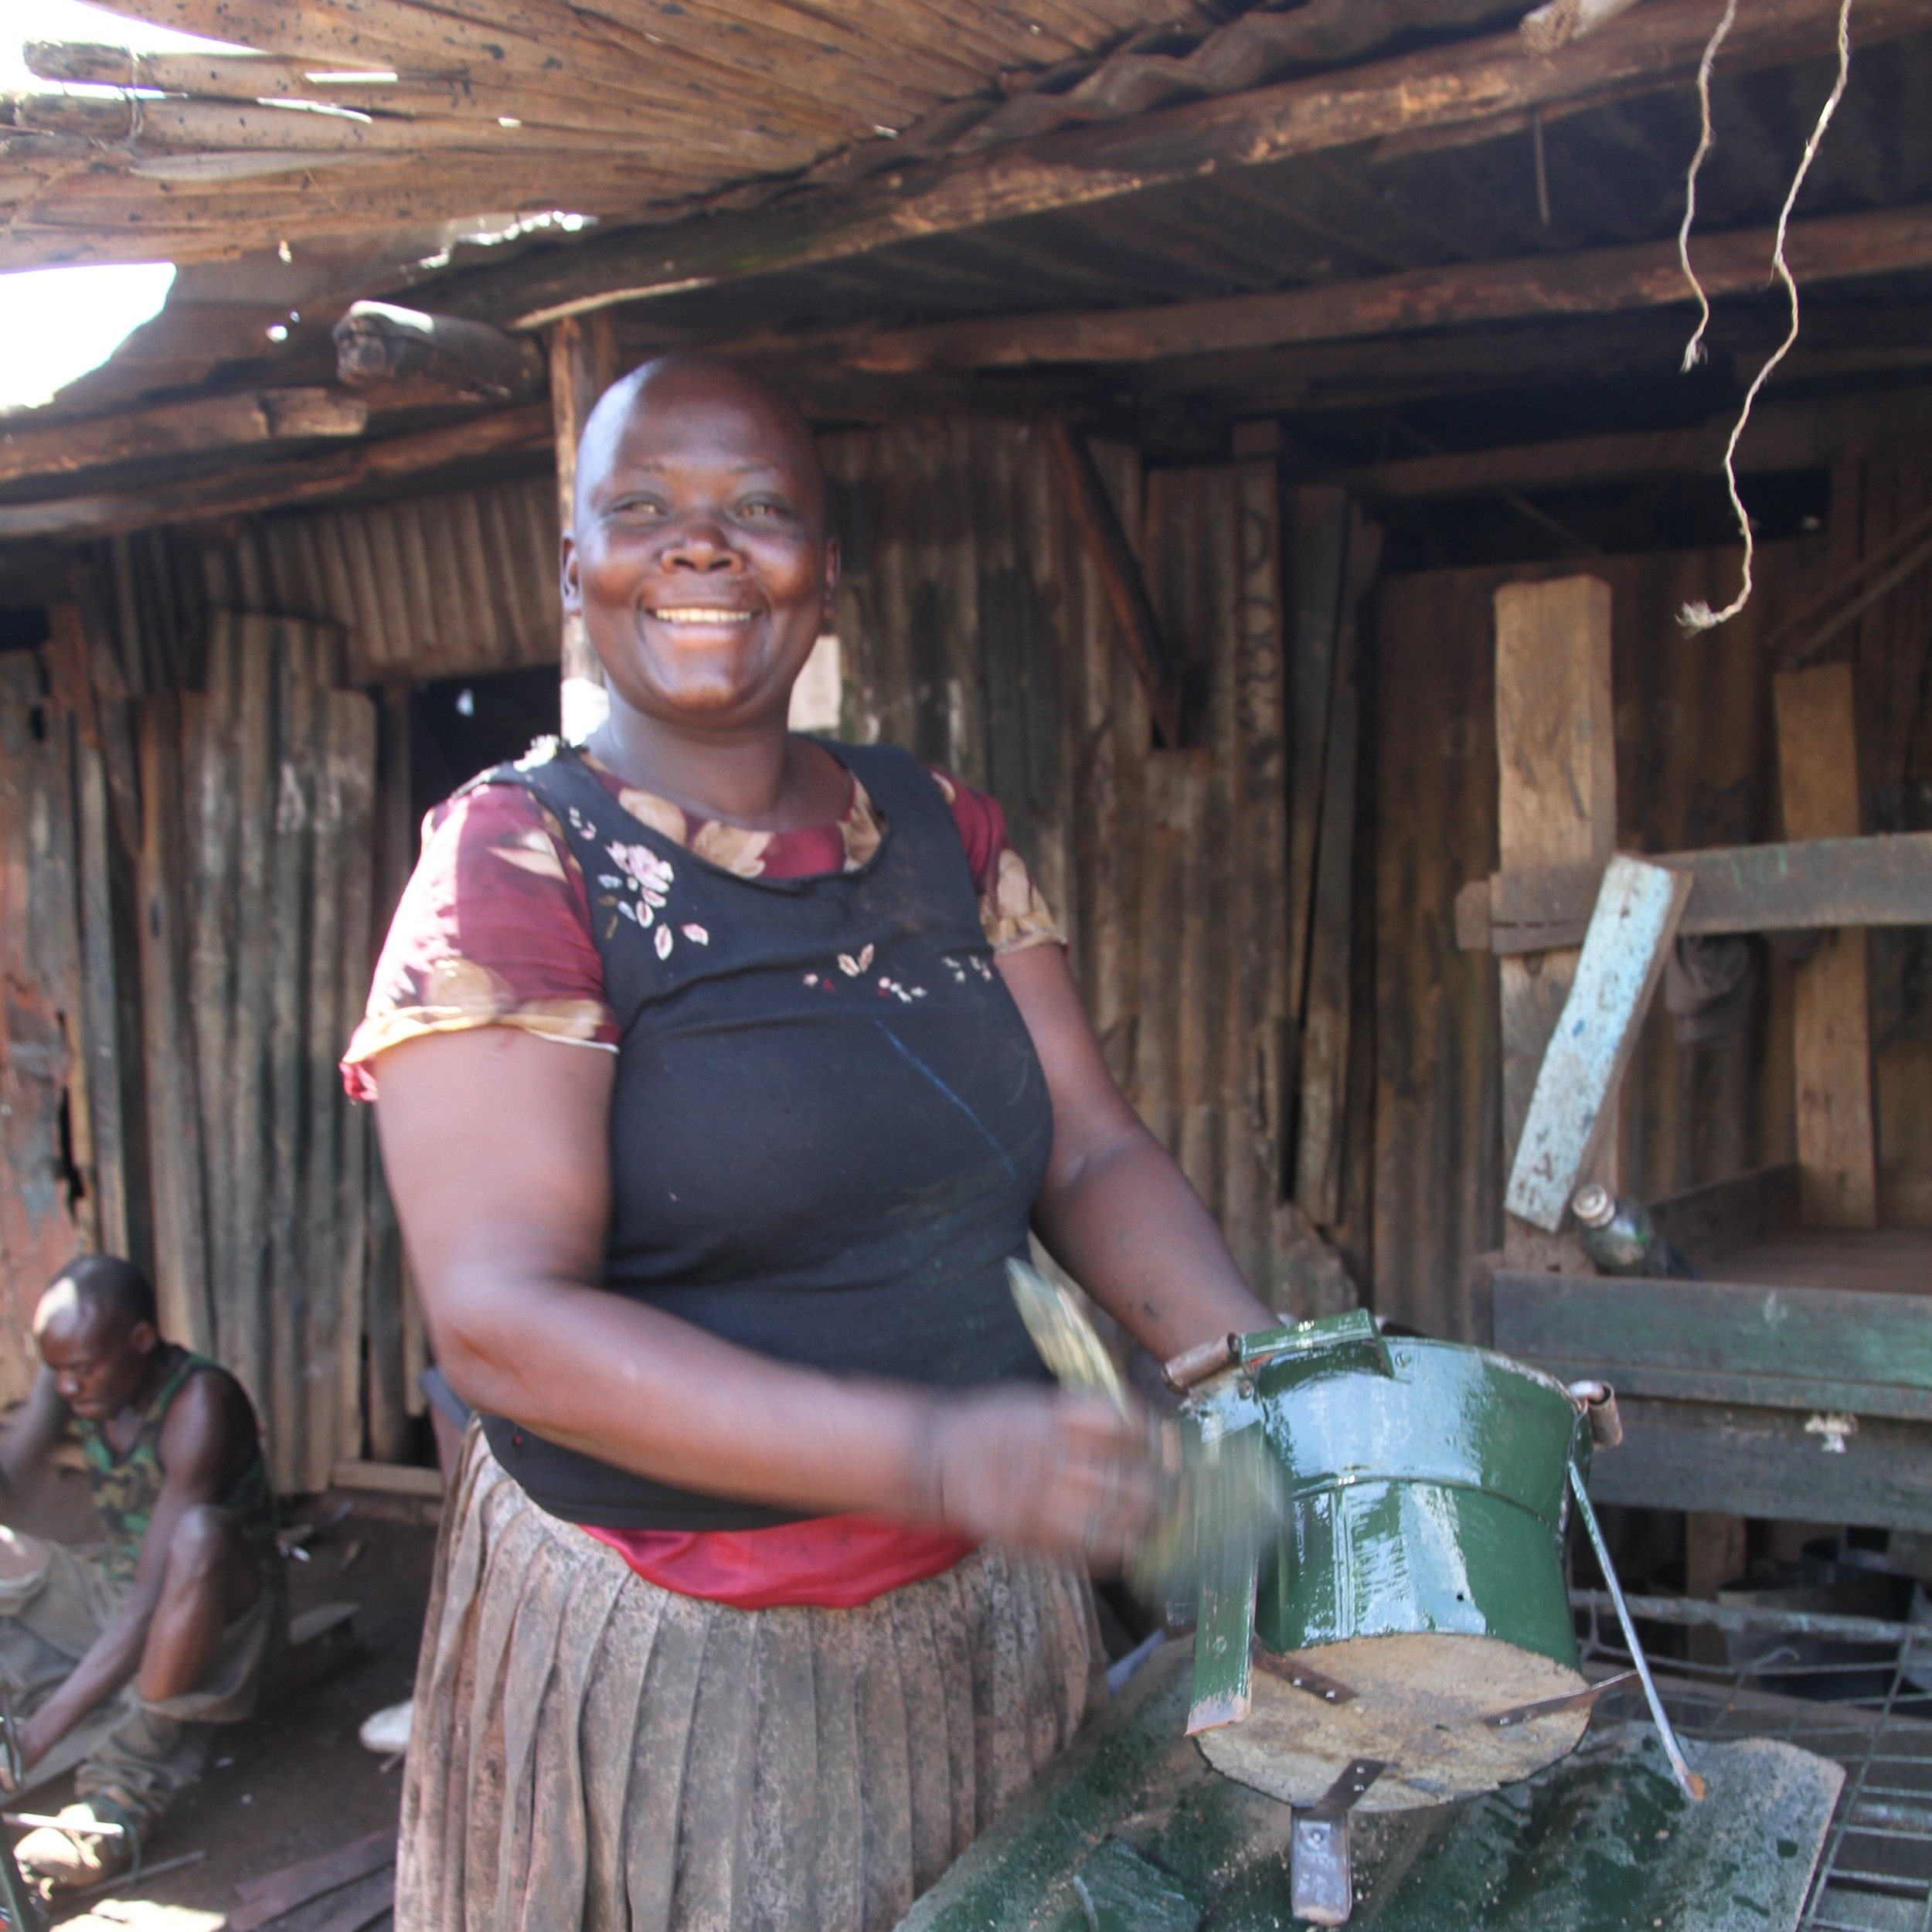 Hi, I'm Eunice - With your support, I hope to earn more income to provide for my teenage sons and hire members of my community to help my stove business.